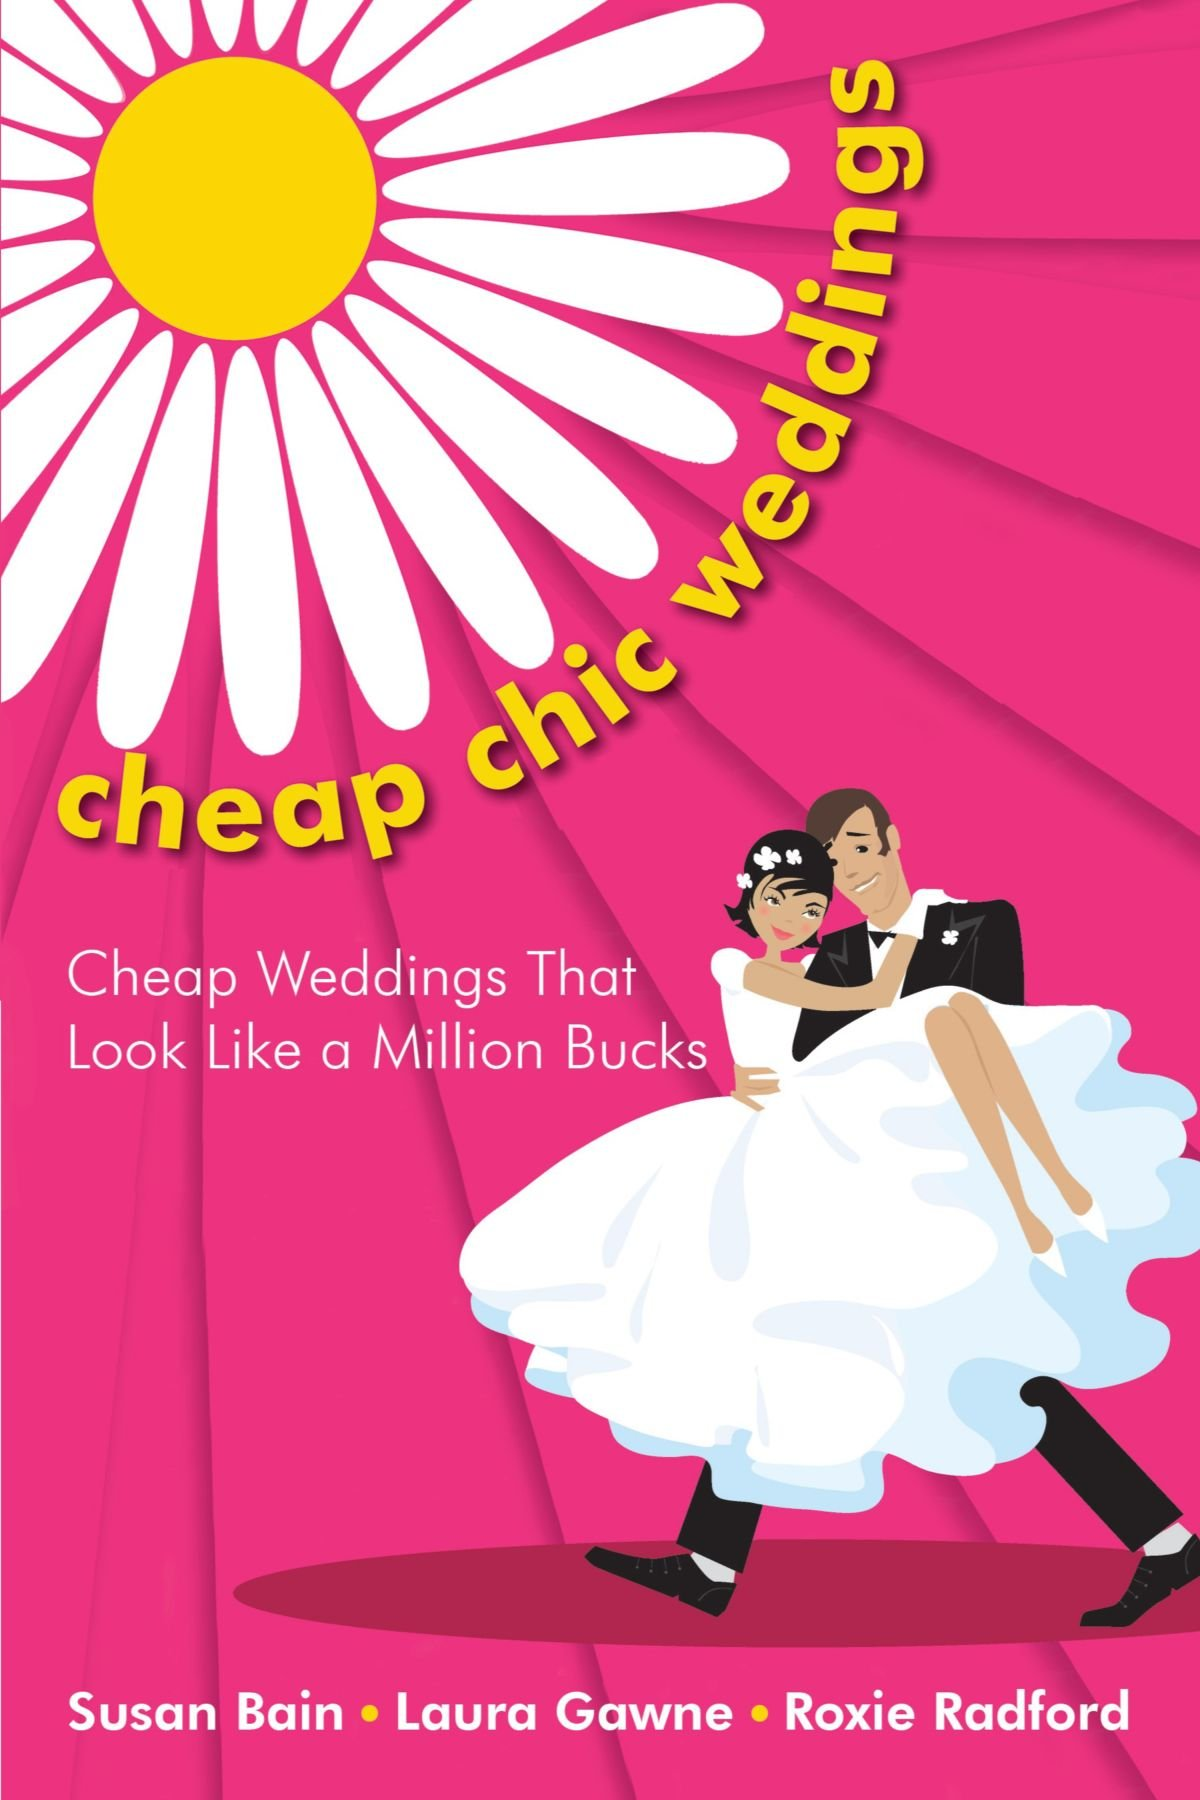 Cheap Chic Weddings: Cheap Weddings that Look Like a Million Bucks